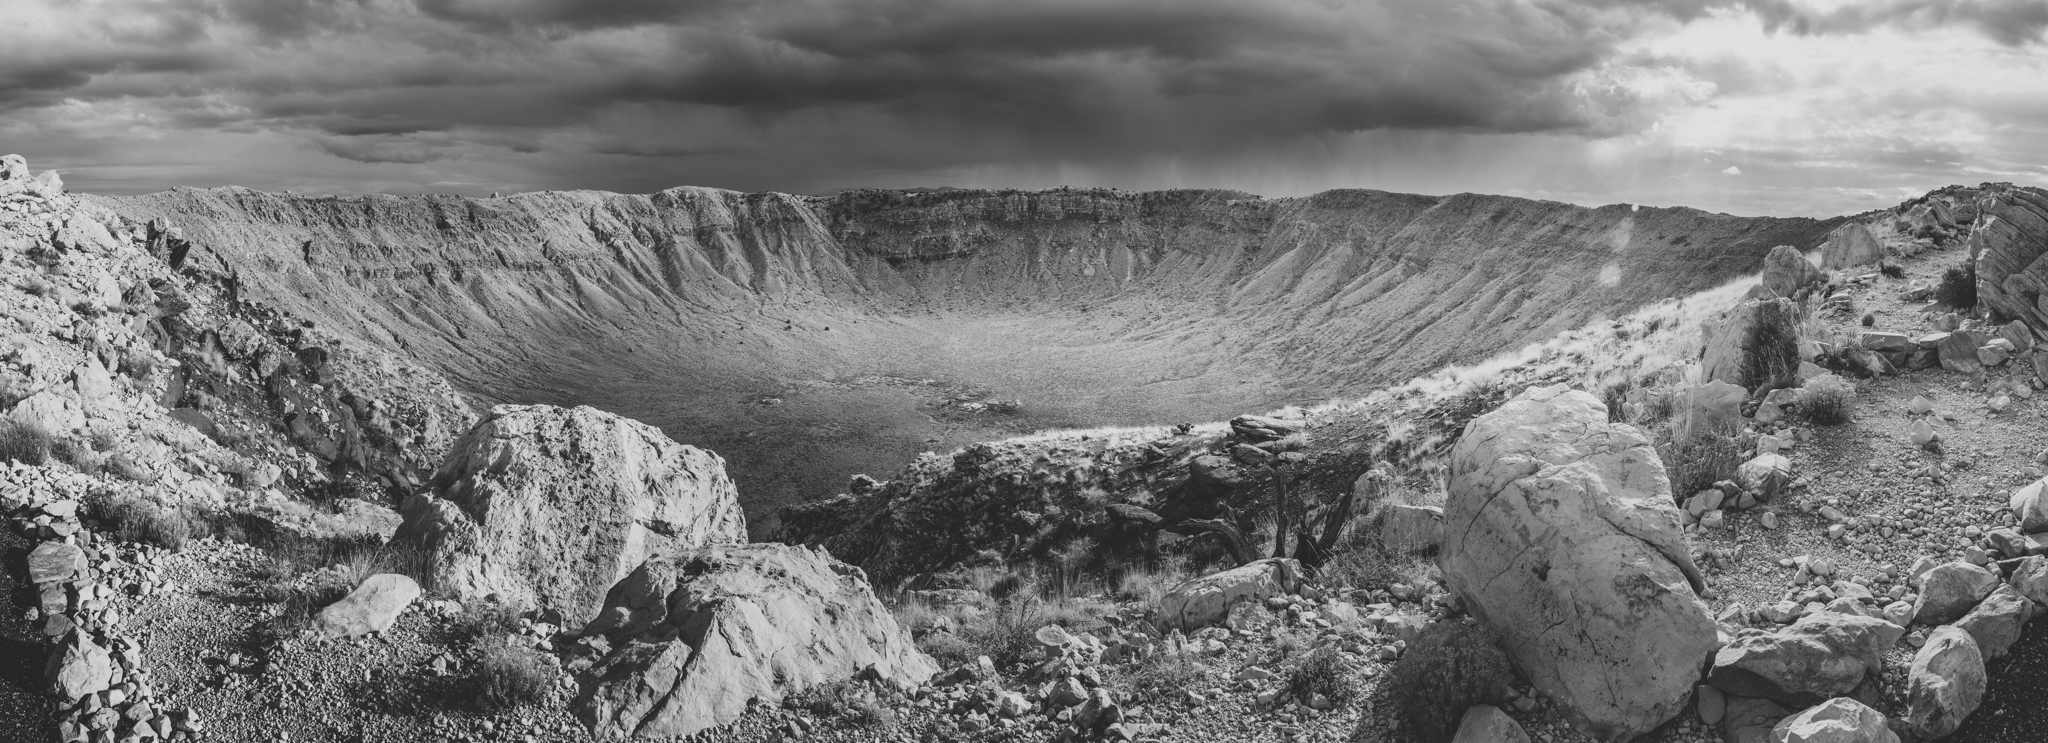 black and white meteor crater panoramic